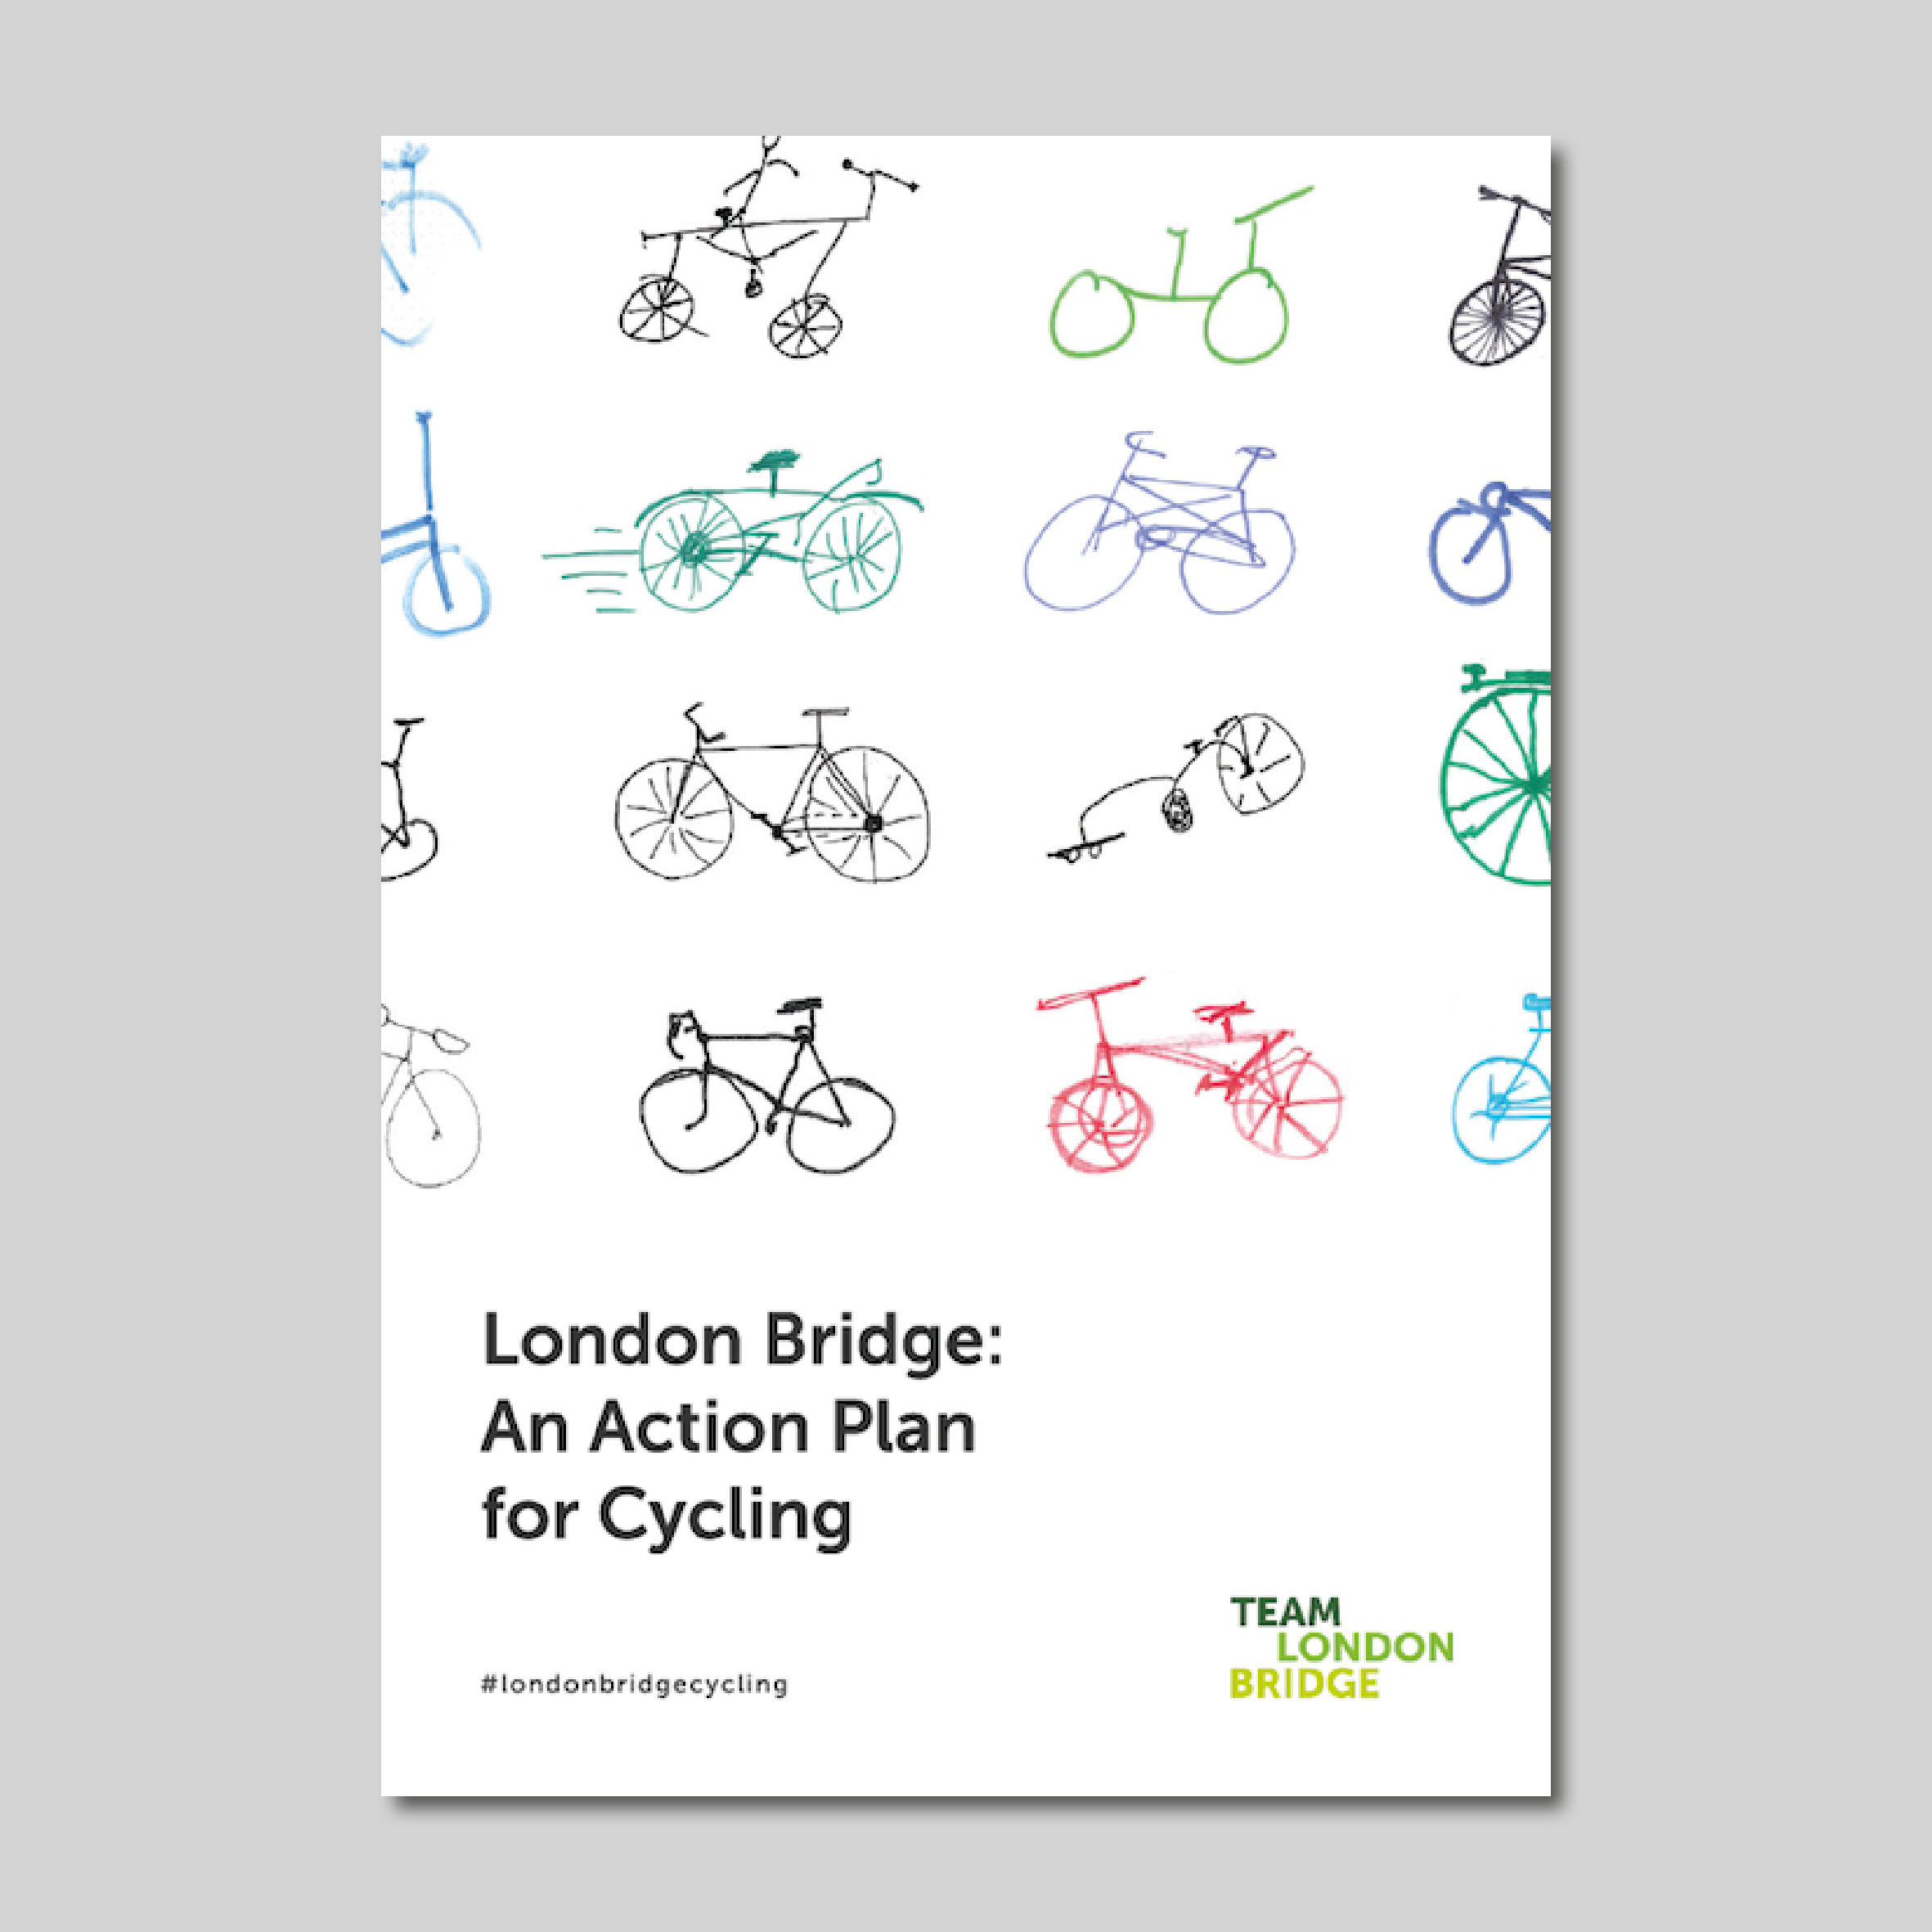 London Bridge Cycling Strategy — Team London Bridge